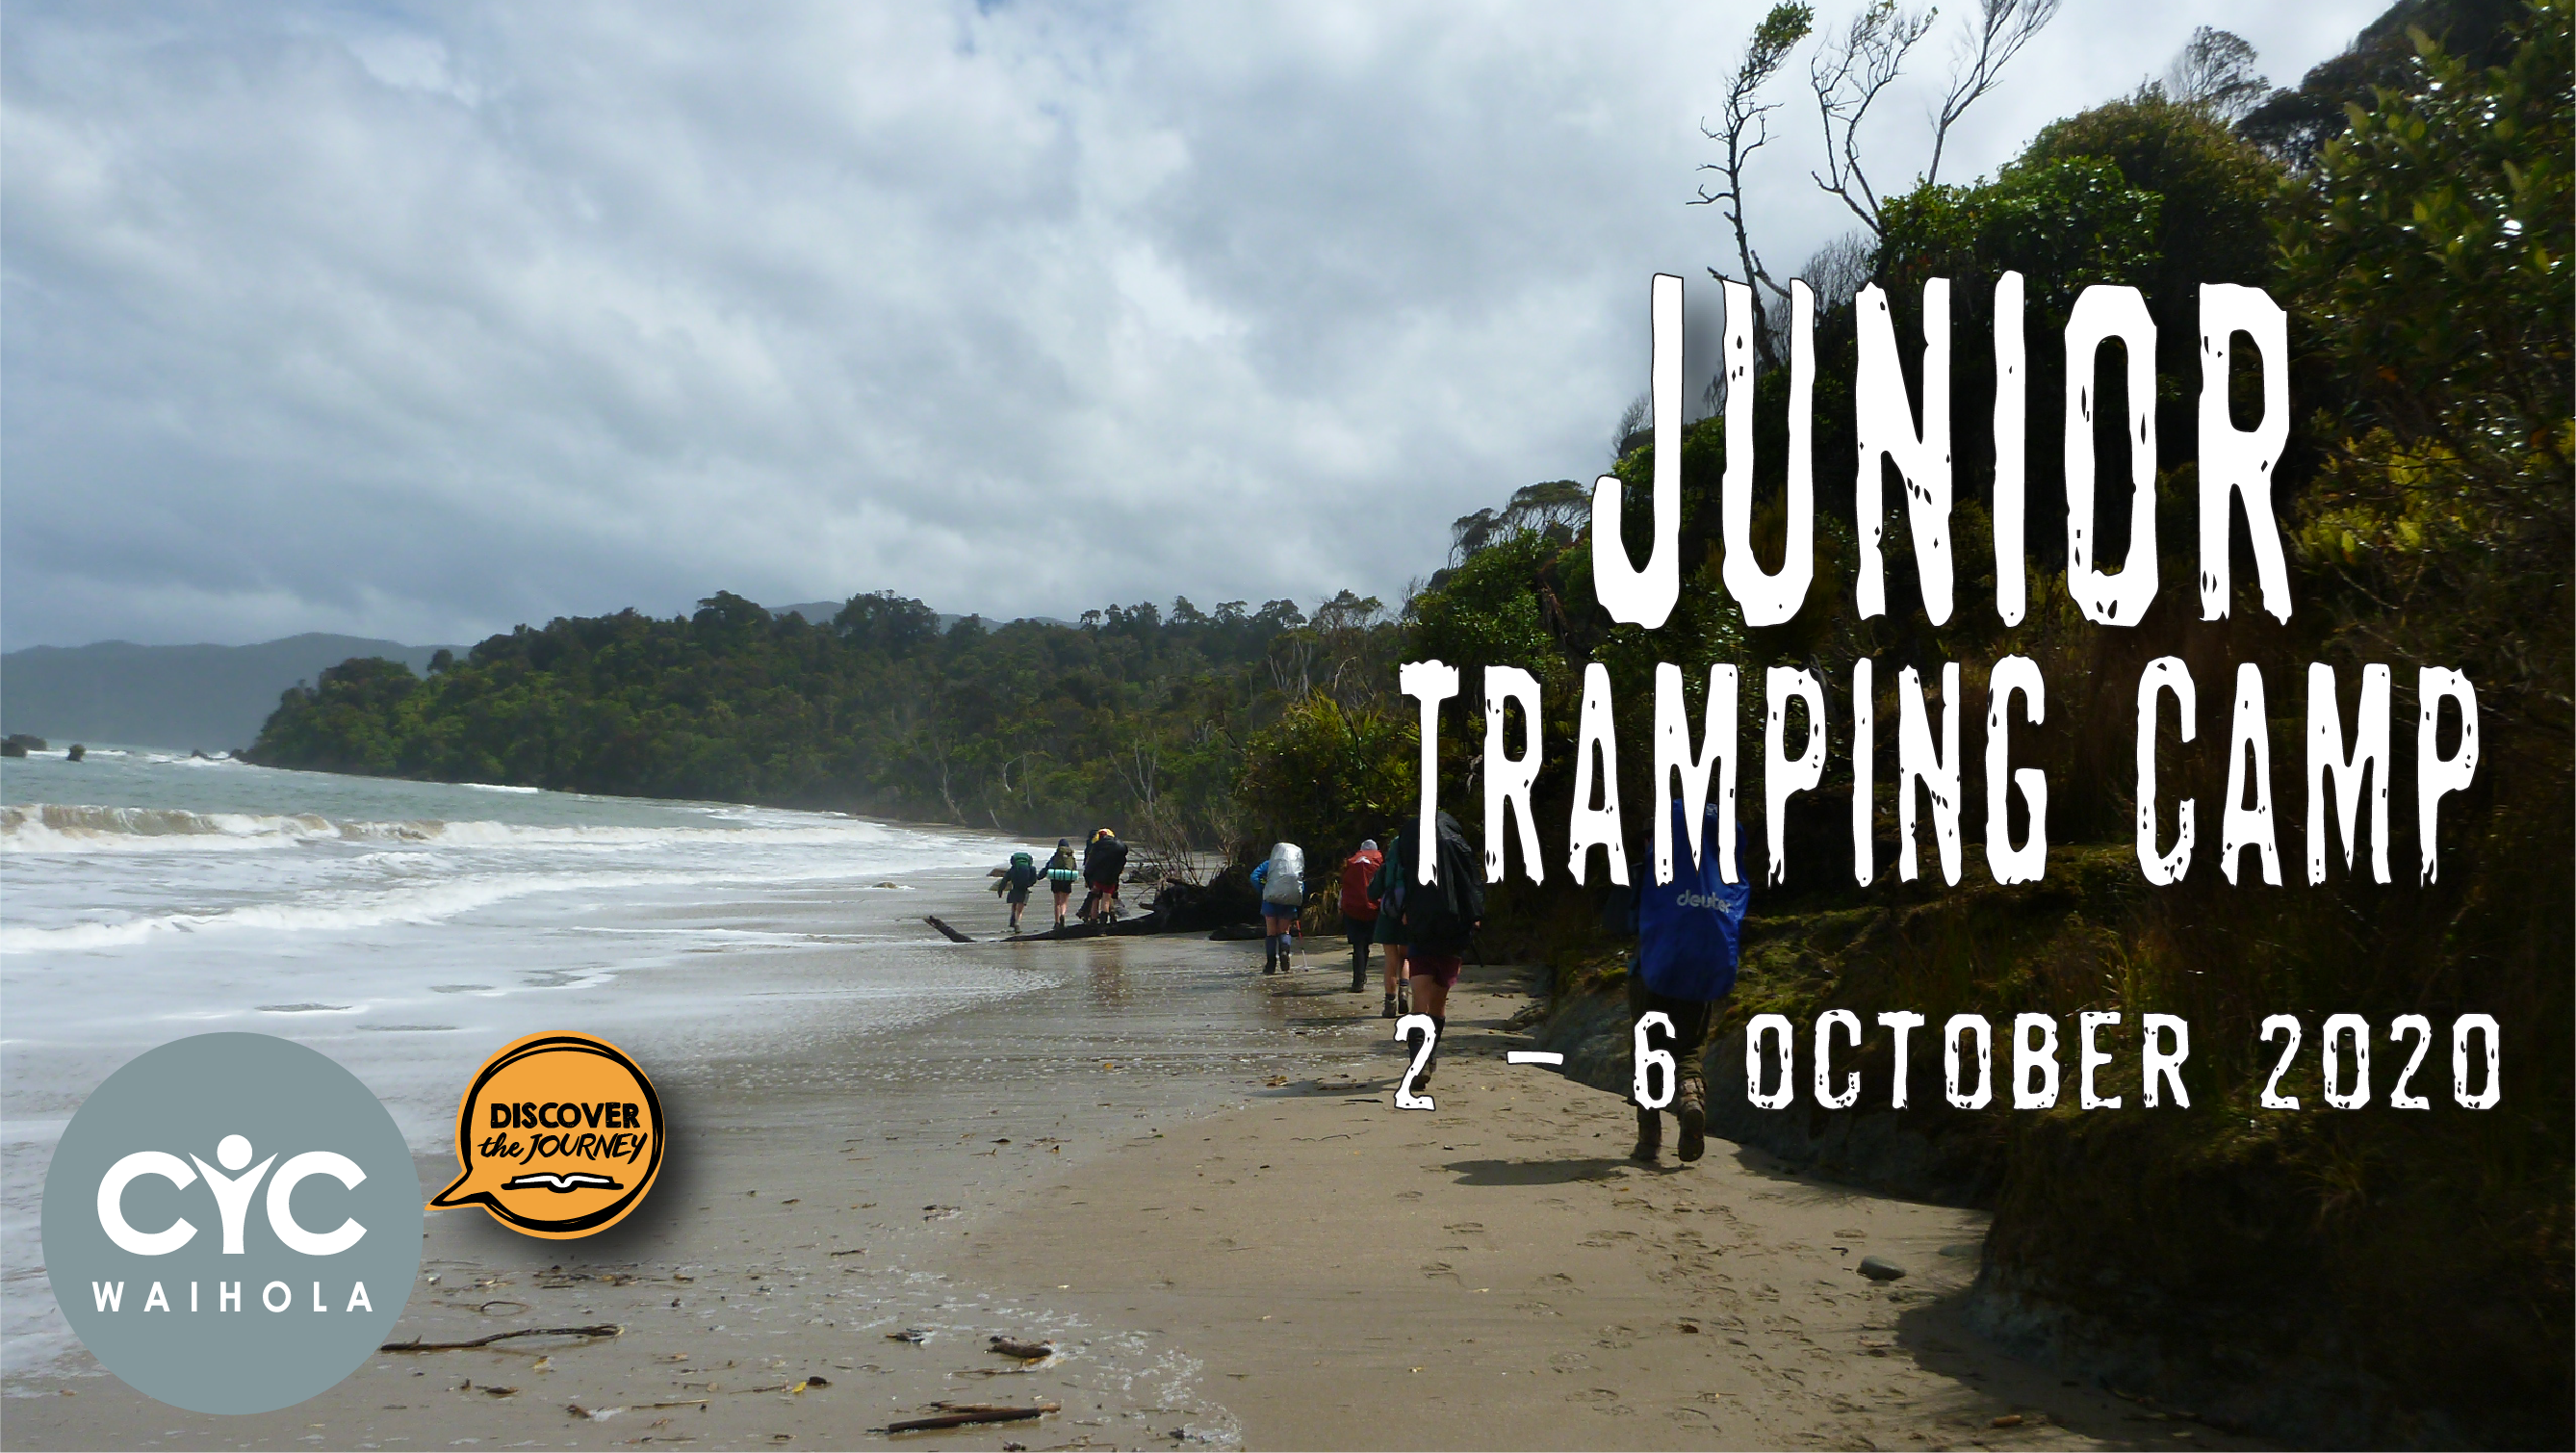 2020 Junior Tramping Camp